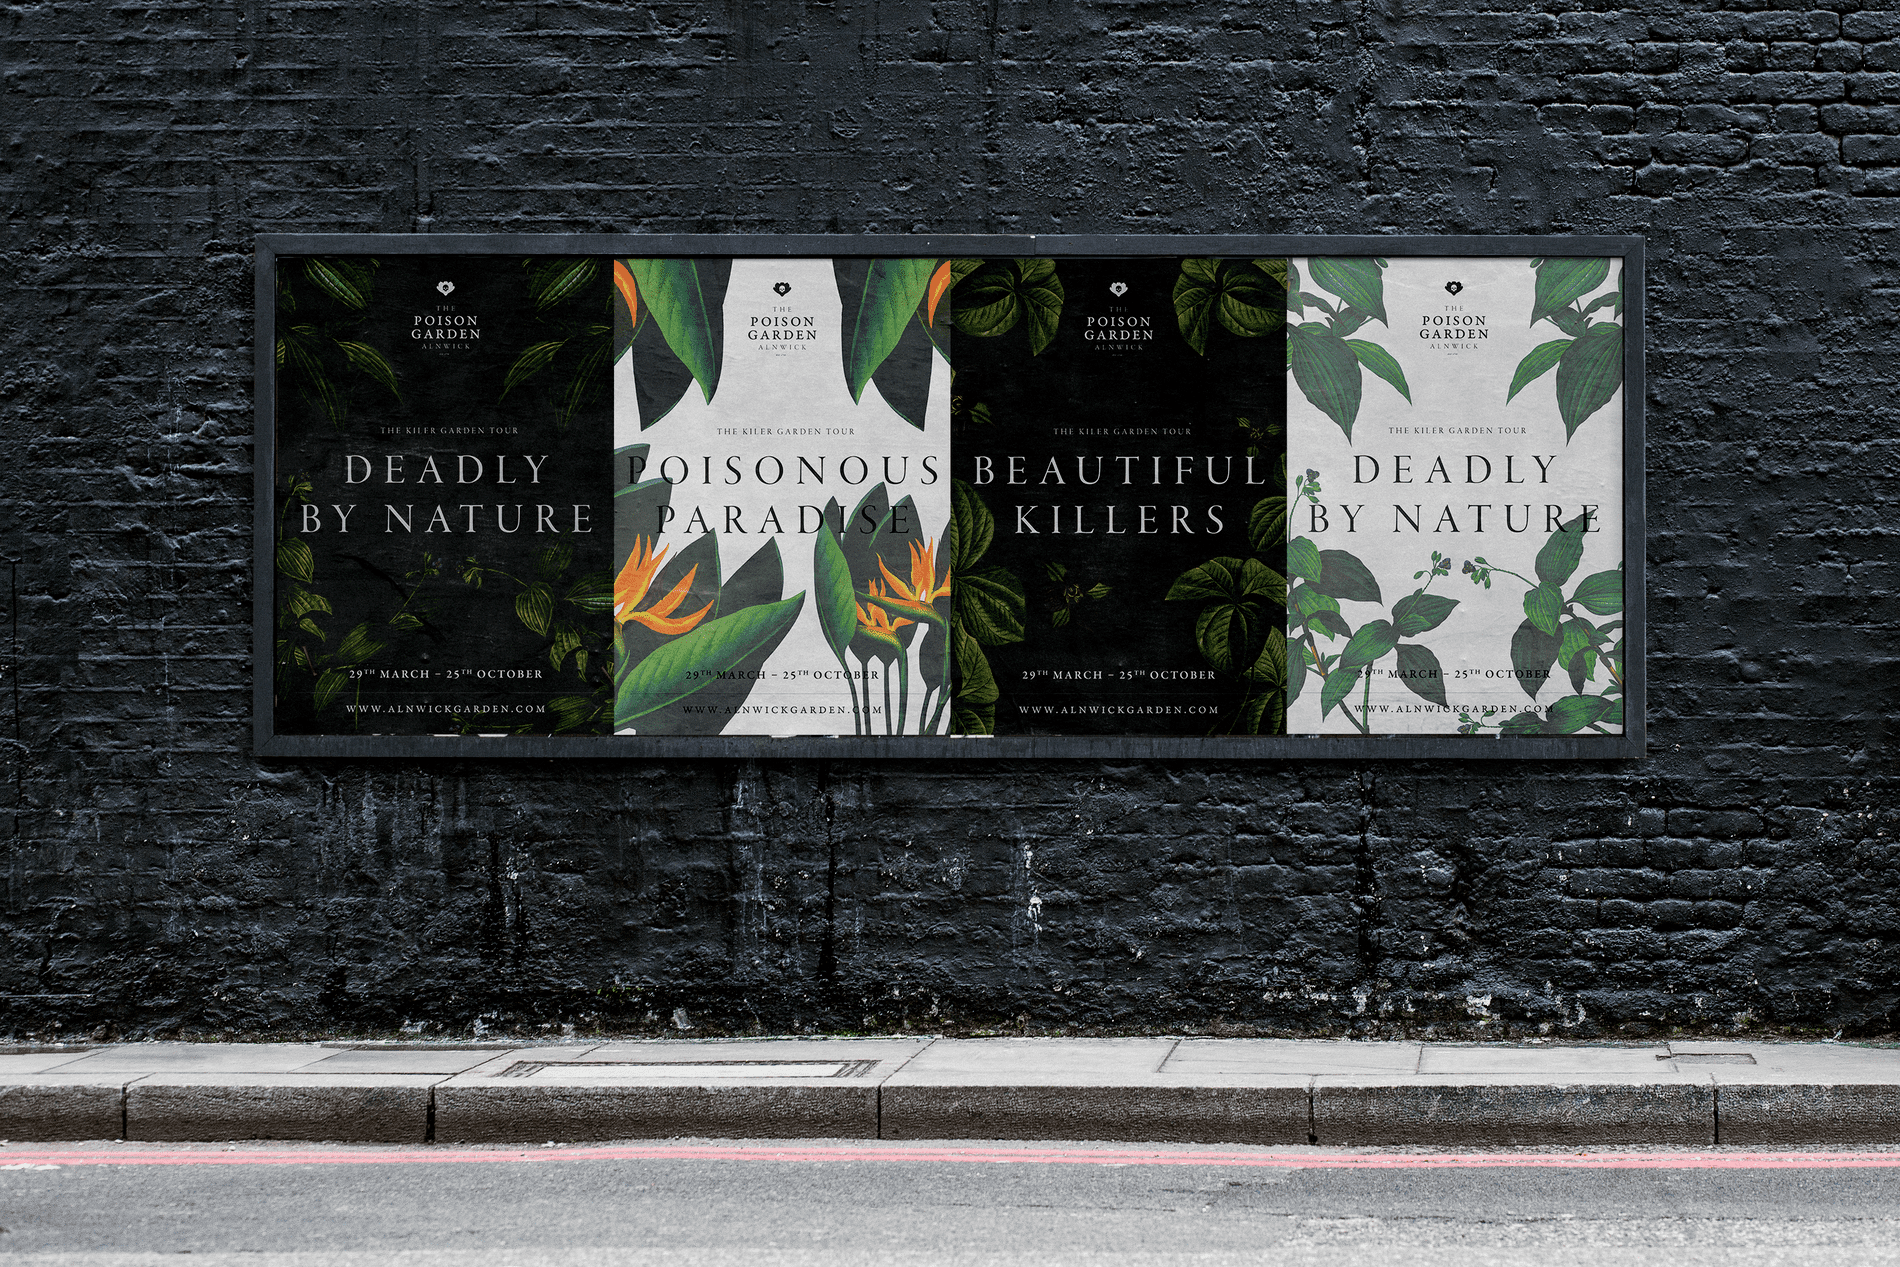 Deadly By Nature: A Darker Reimagining of the Alnwick Poison Garden Brand